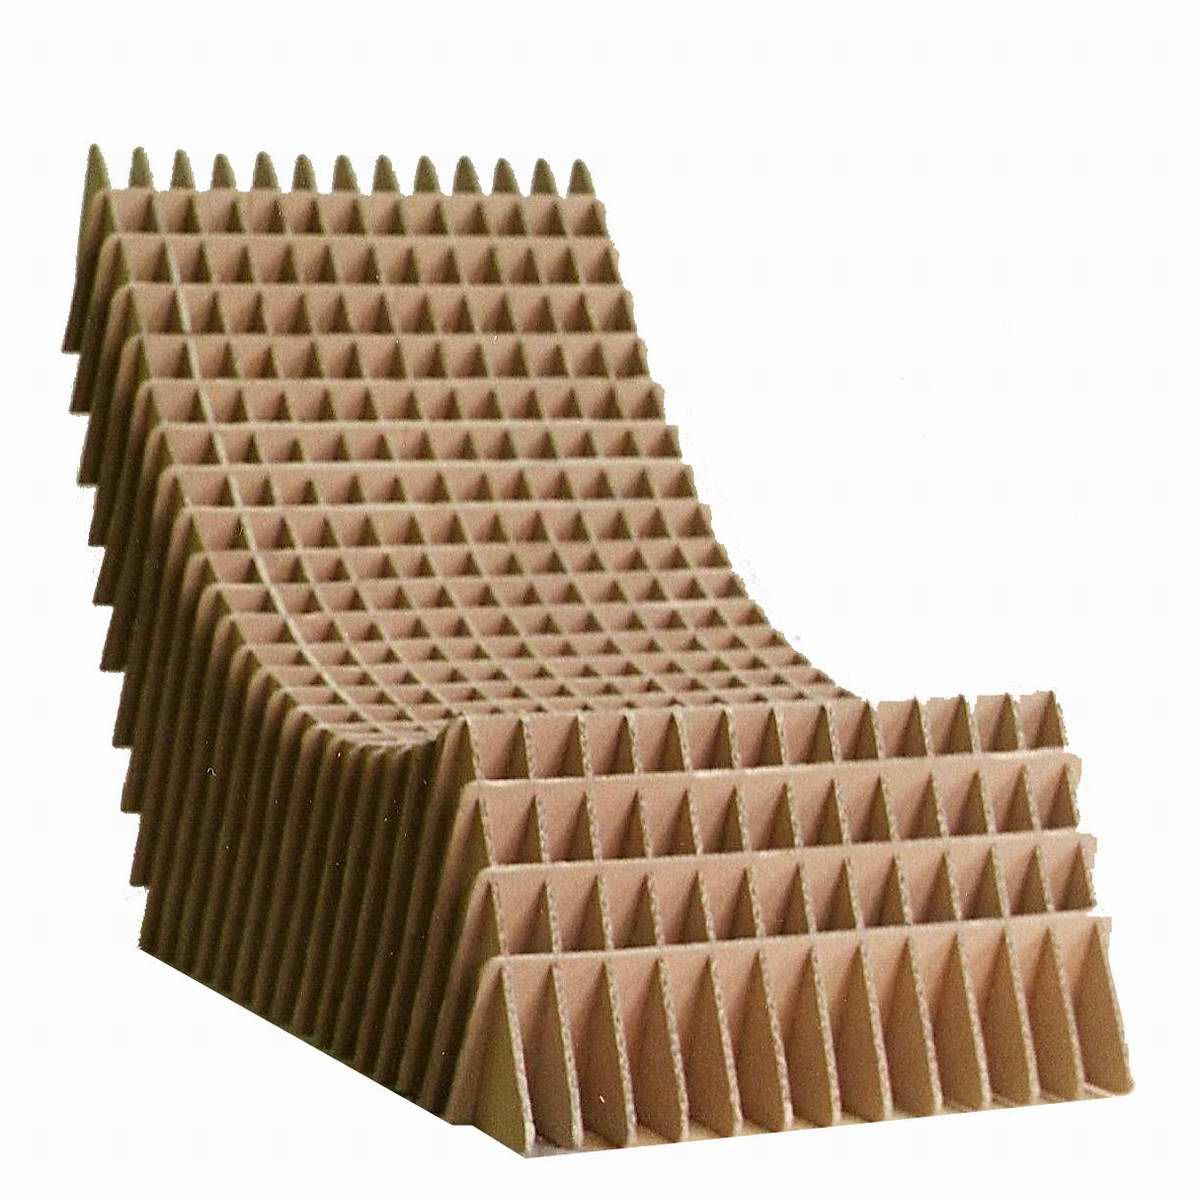 Cardboard chair design no glue - 7 Wacky Pieces Of Cardboard Furniture You Ll Have To See To Believe Cardboard Chaircardboard Designcardboard